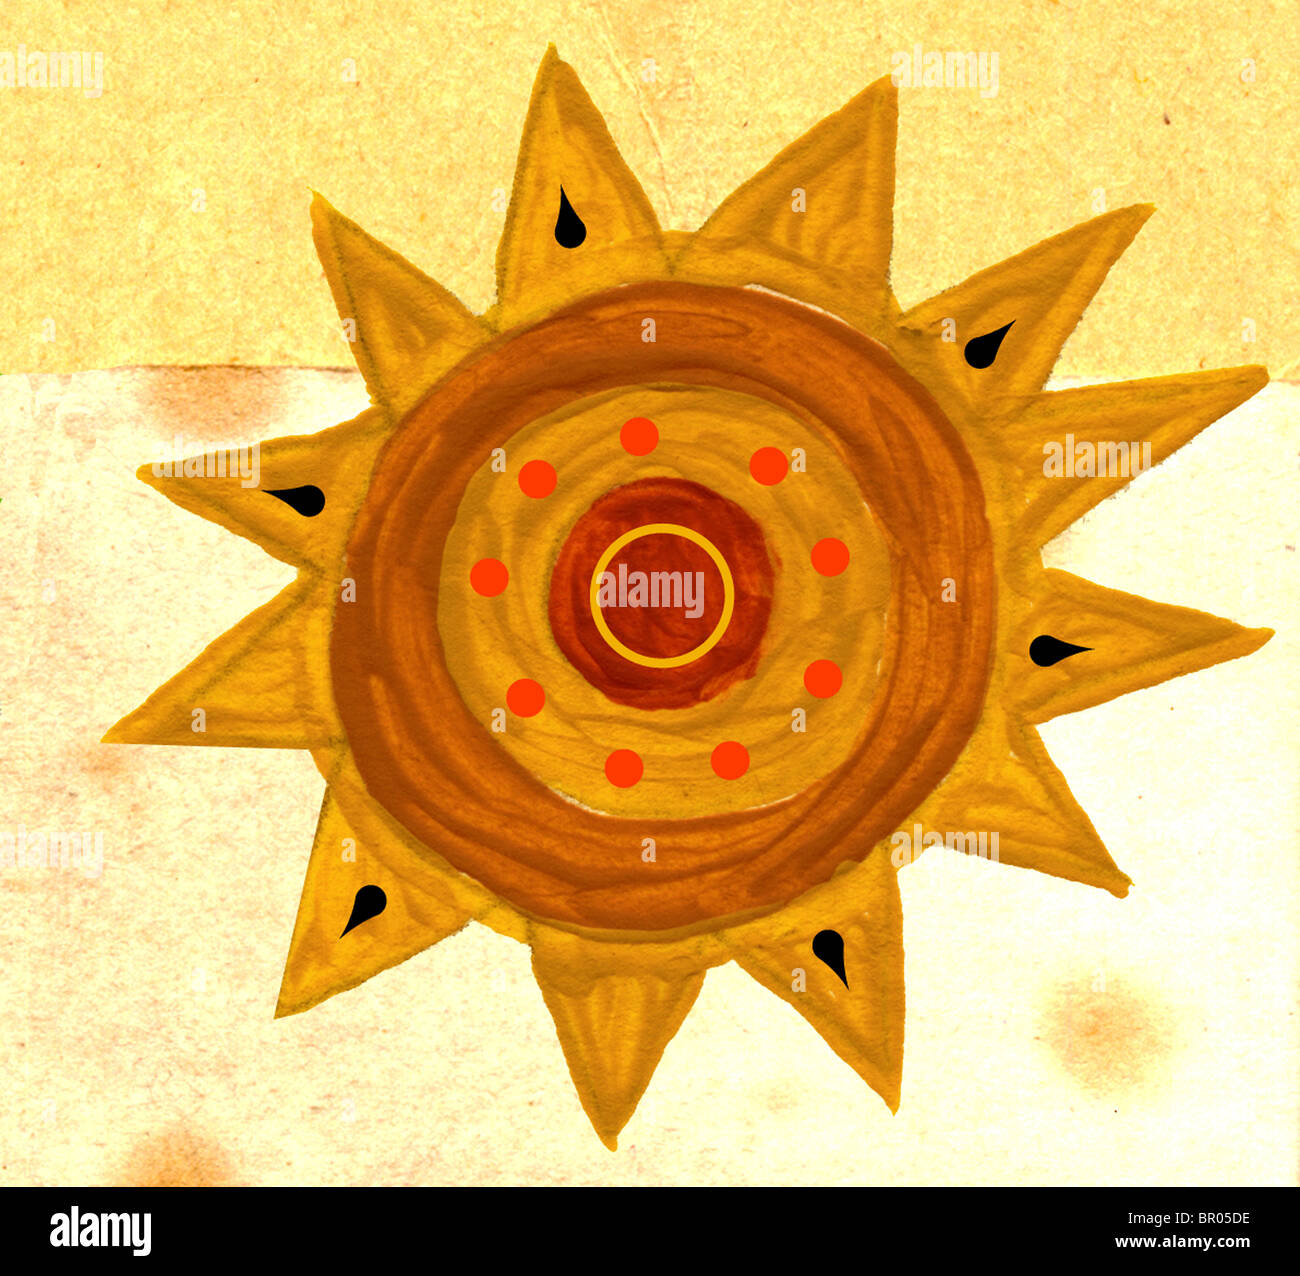 A graphical representation of the sun - Stock Image